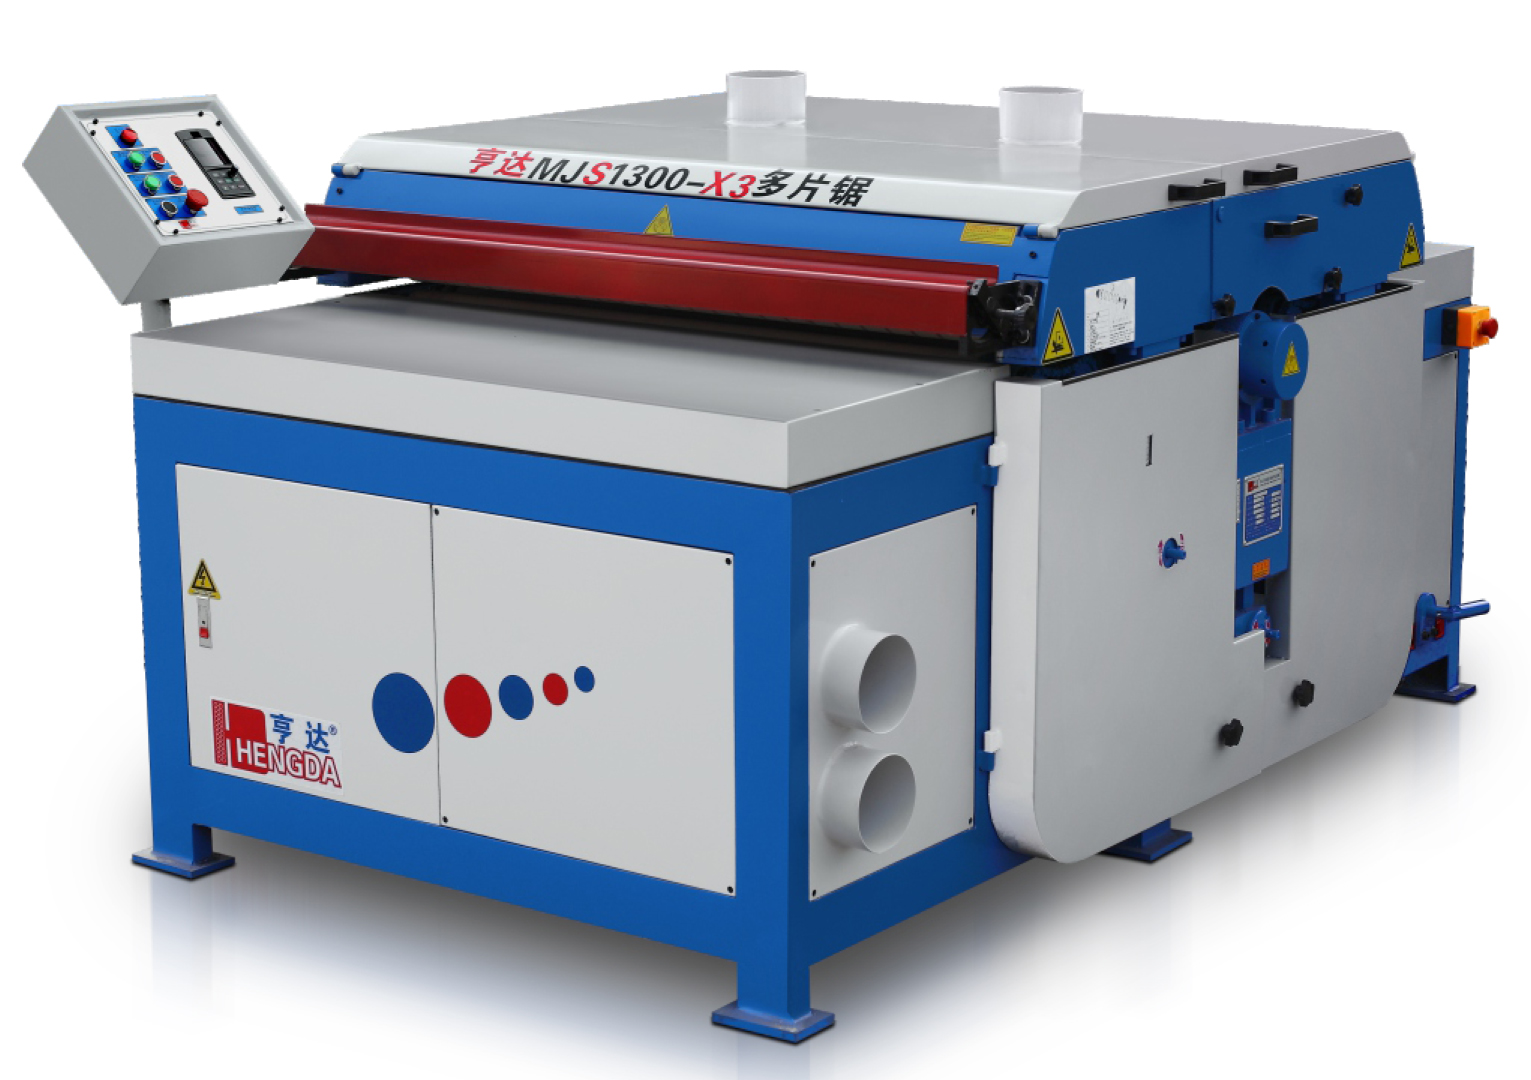 Hengda MJS1300X3 Multiple Blade Saw produced by top Chinese supplier with 20 years experience